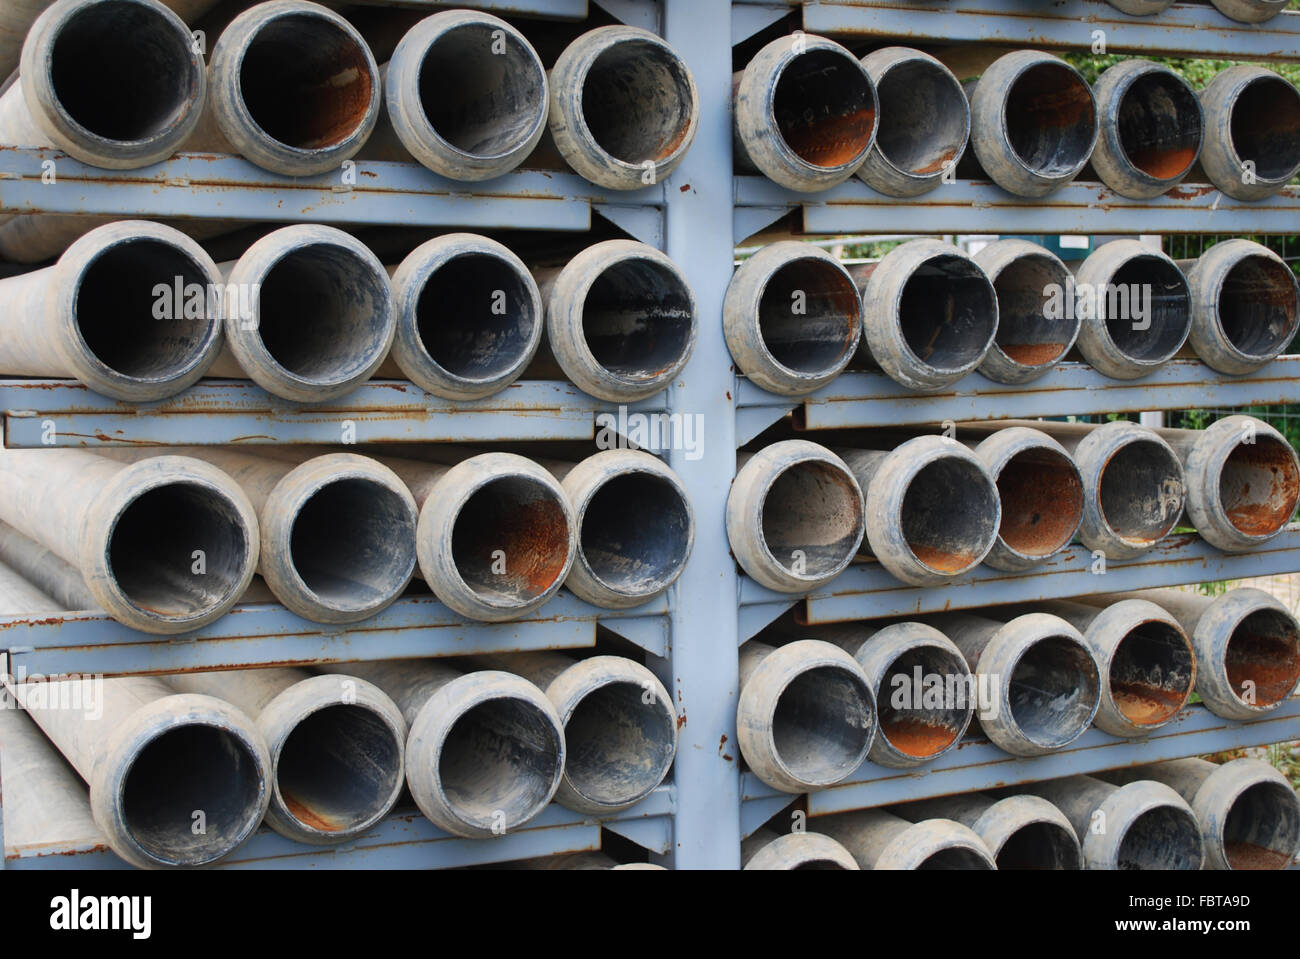 drain pipes - Stock Image